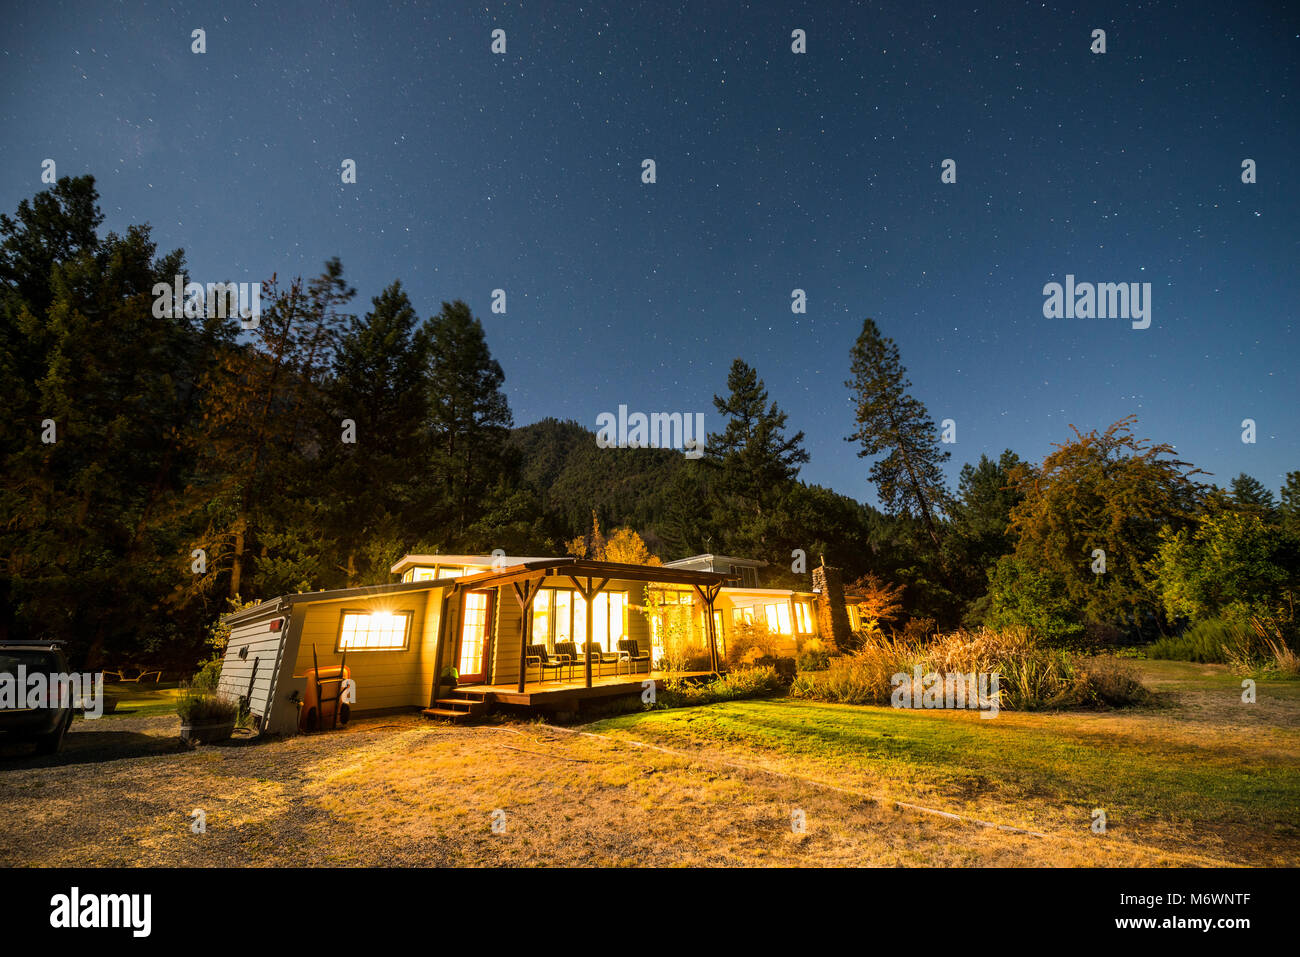 The Otter Bar Lodge and Kayak School is illuminated at night under a